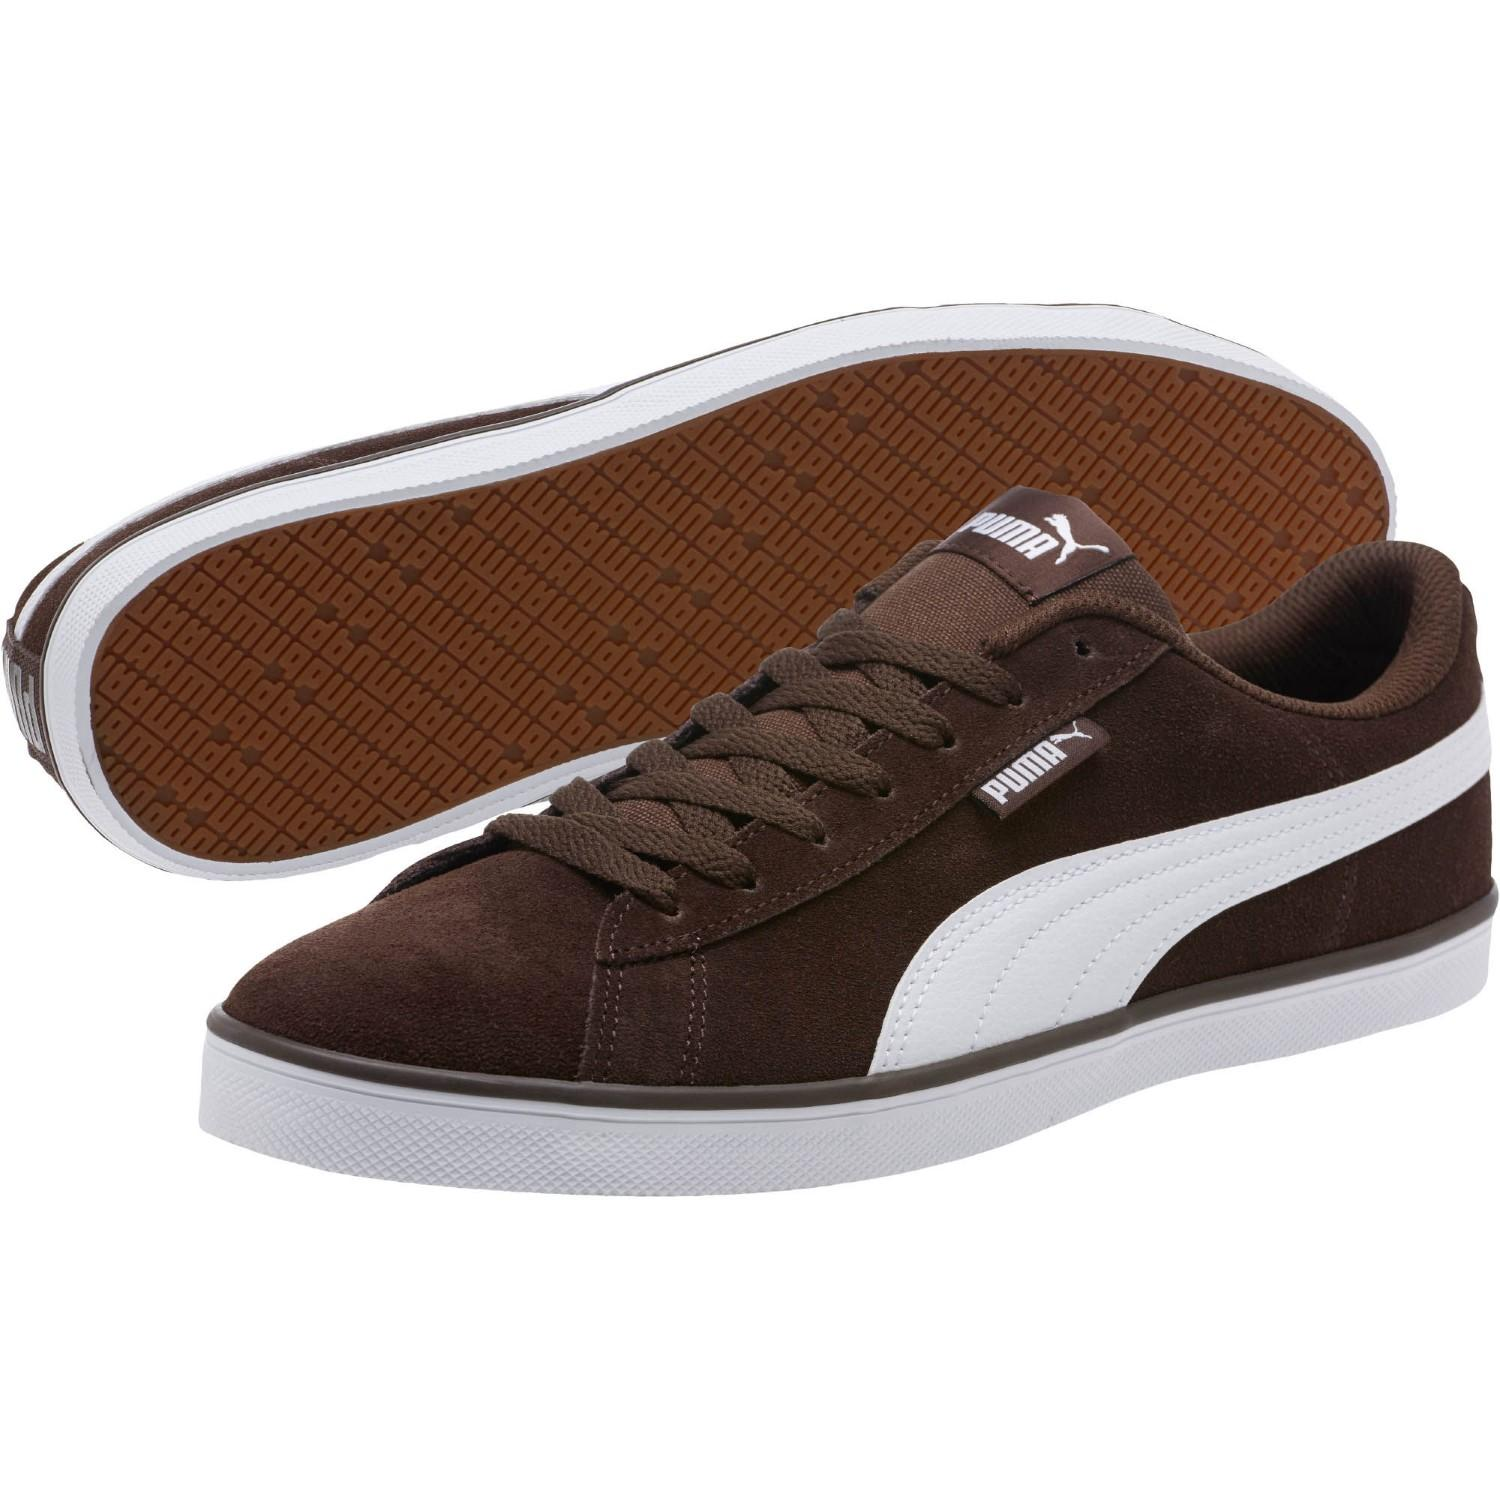 290f92bea70e85 Lyst - PUMA Urban Plus Suede Sneakers in Brown for Men - Save 26%